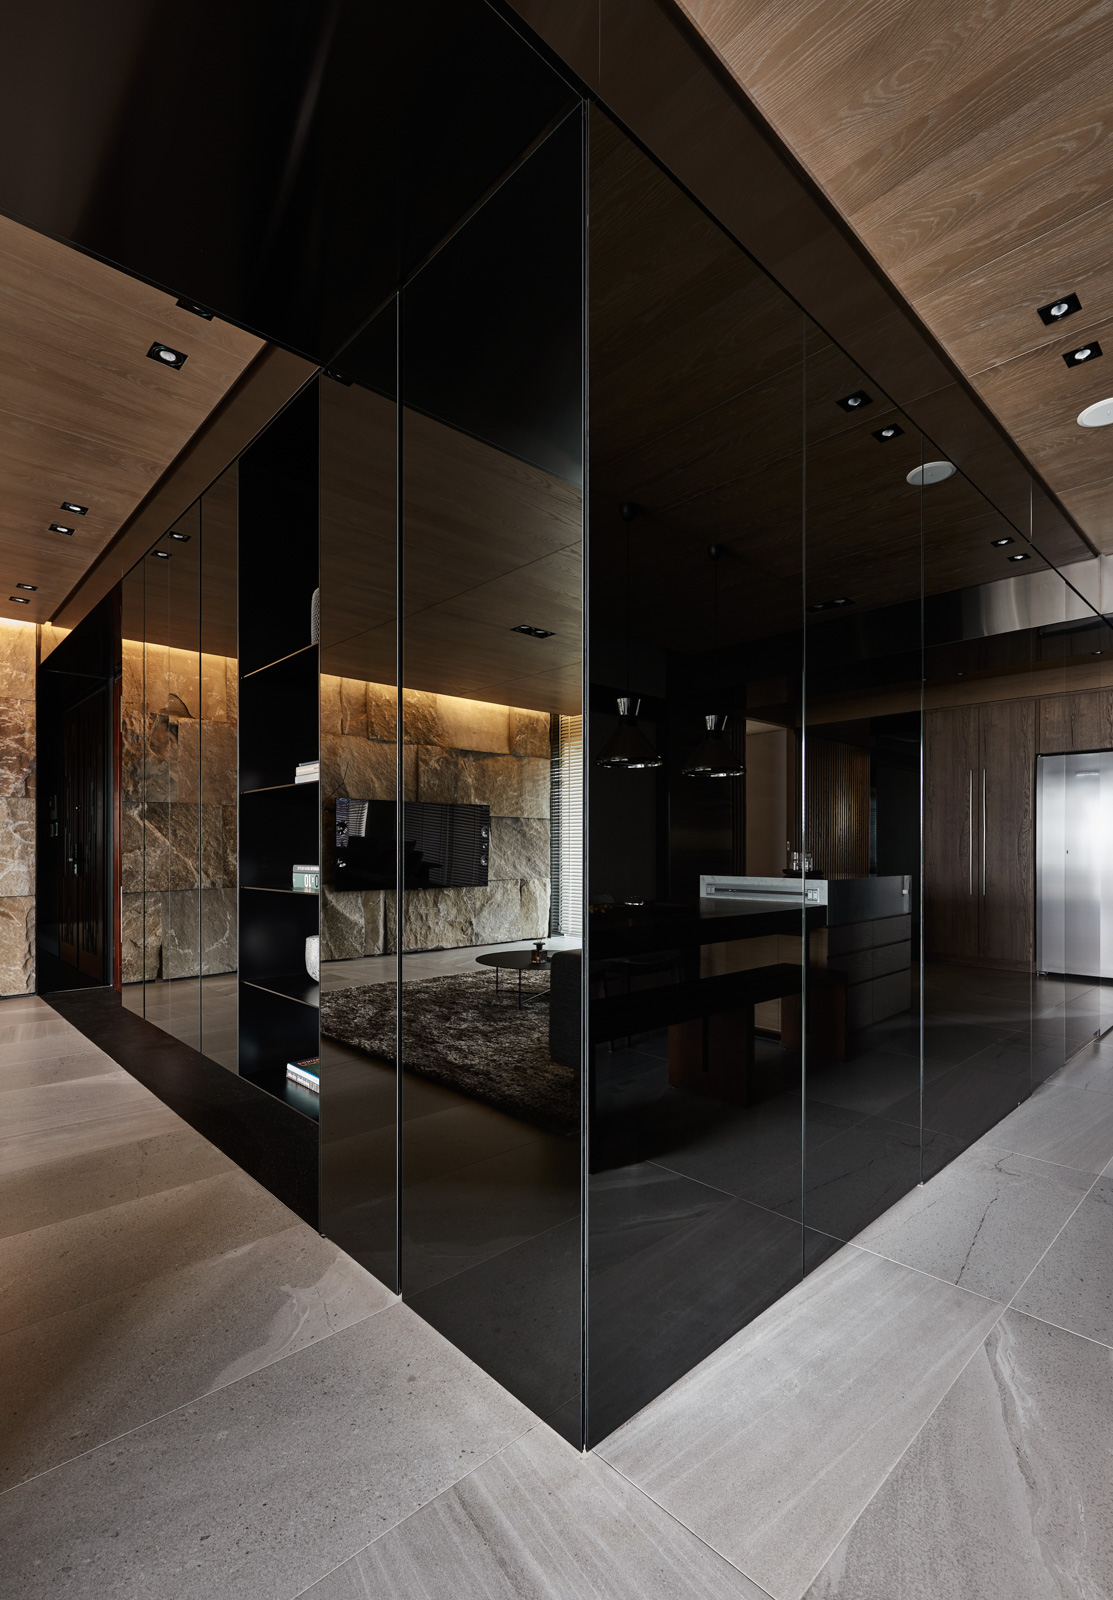 marble-floor-black-acrylic-cabinetry-sophisticated-dark-interior